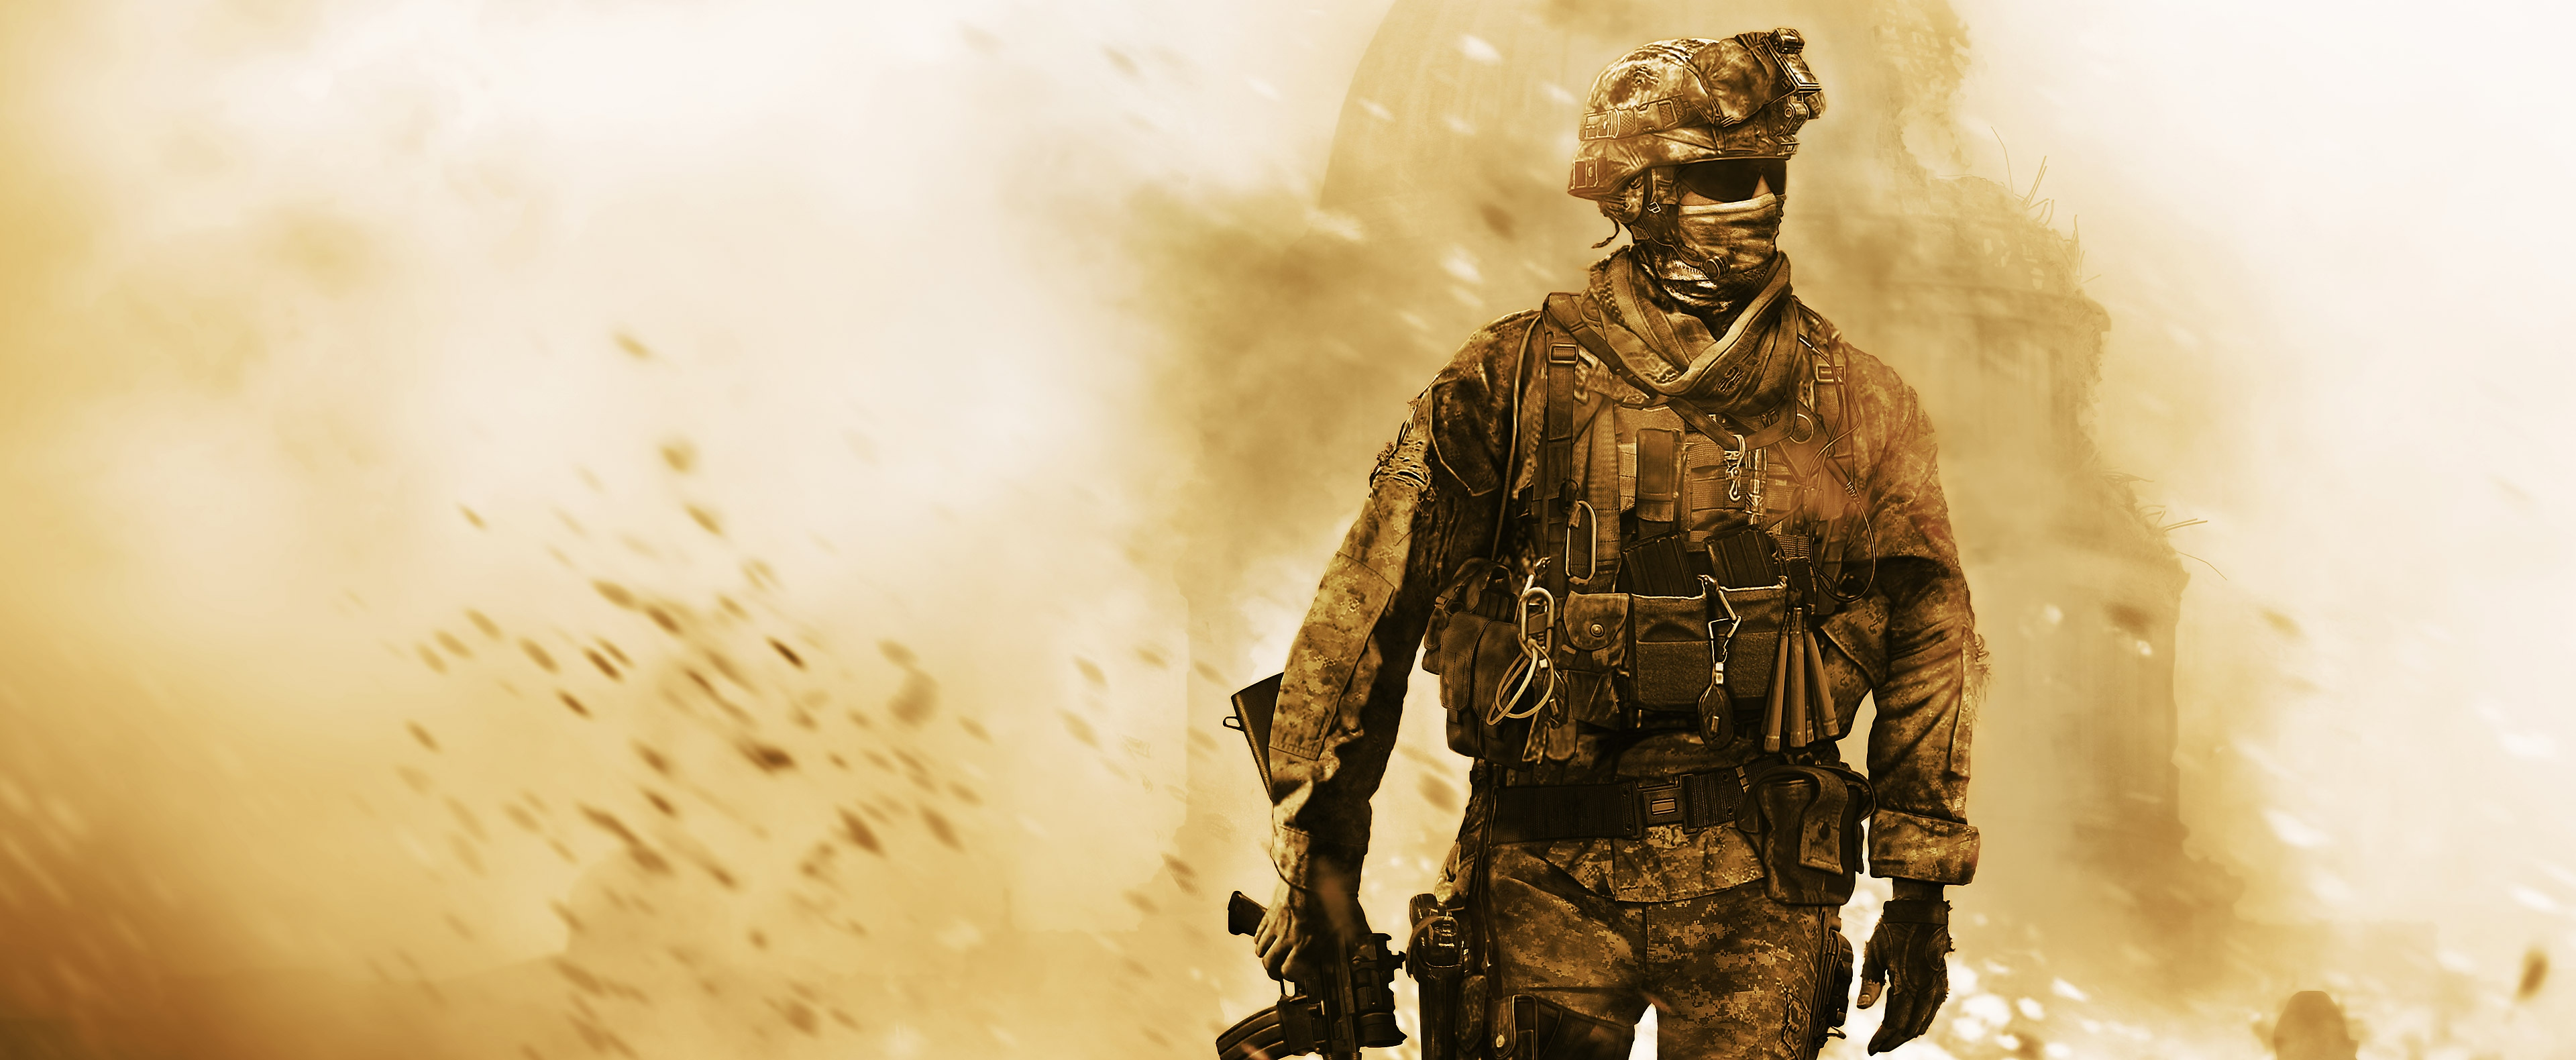 Call of Duty Modern Warfare 2 Campaña Remasterizada - Arte de héroe